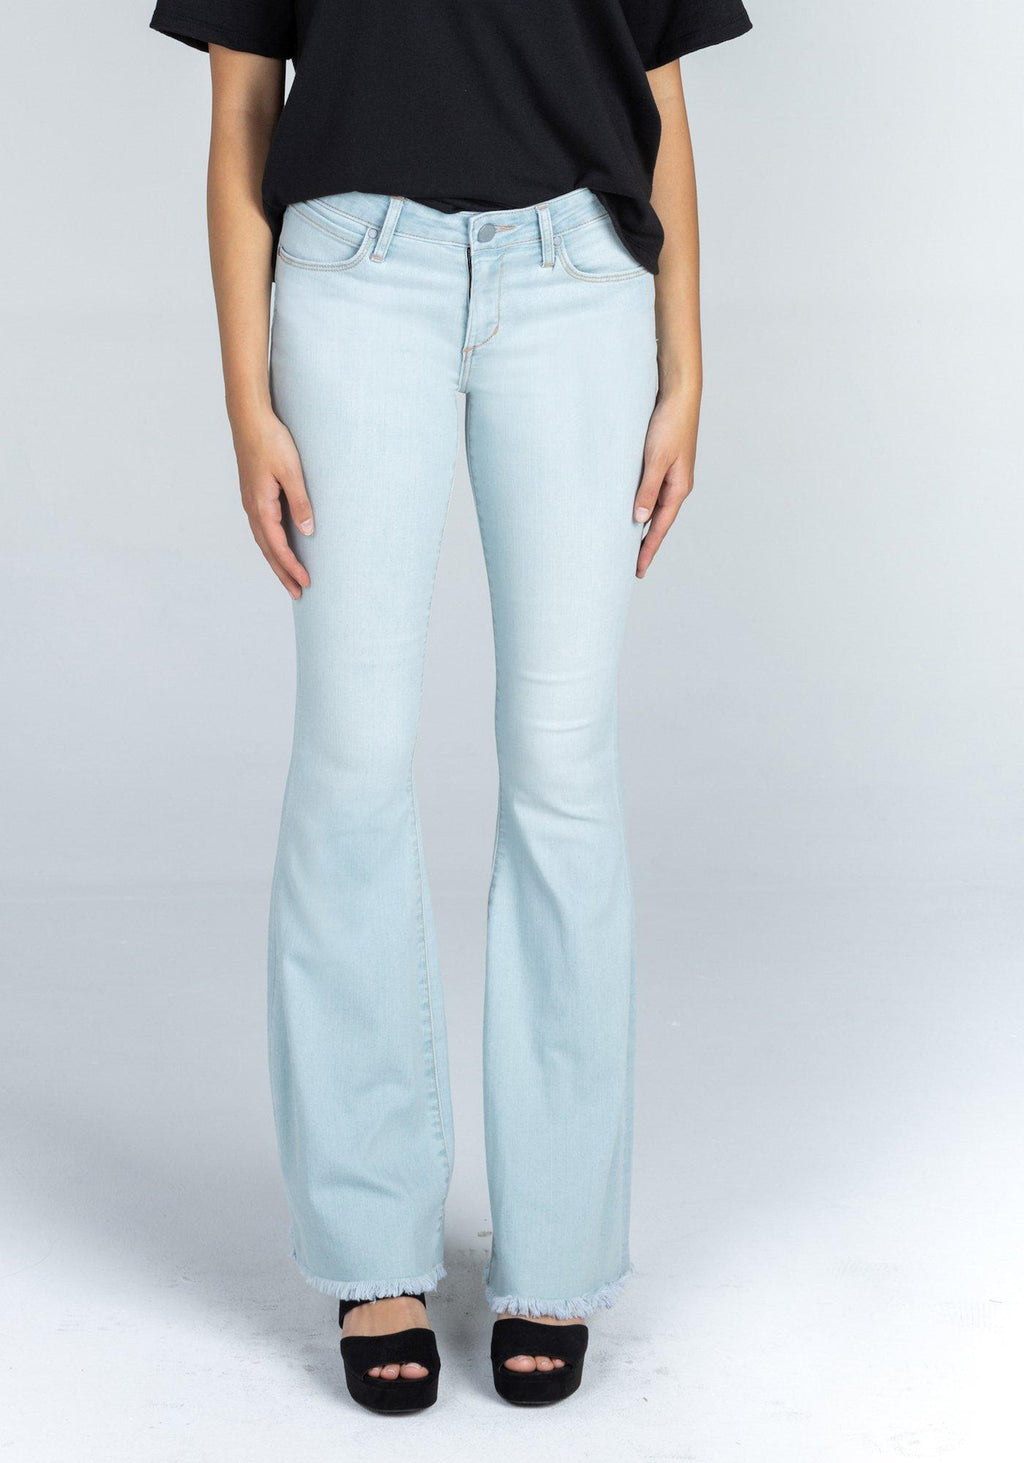 Faith Kauai Flare Jeans - 13 Hub Lane   |